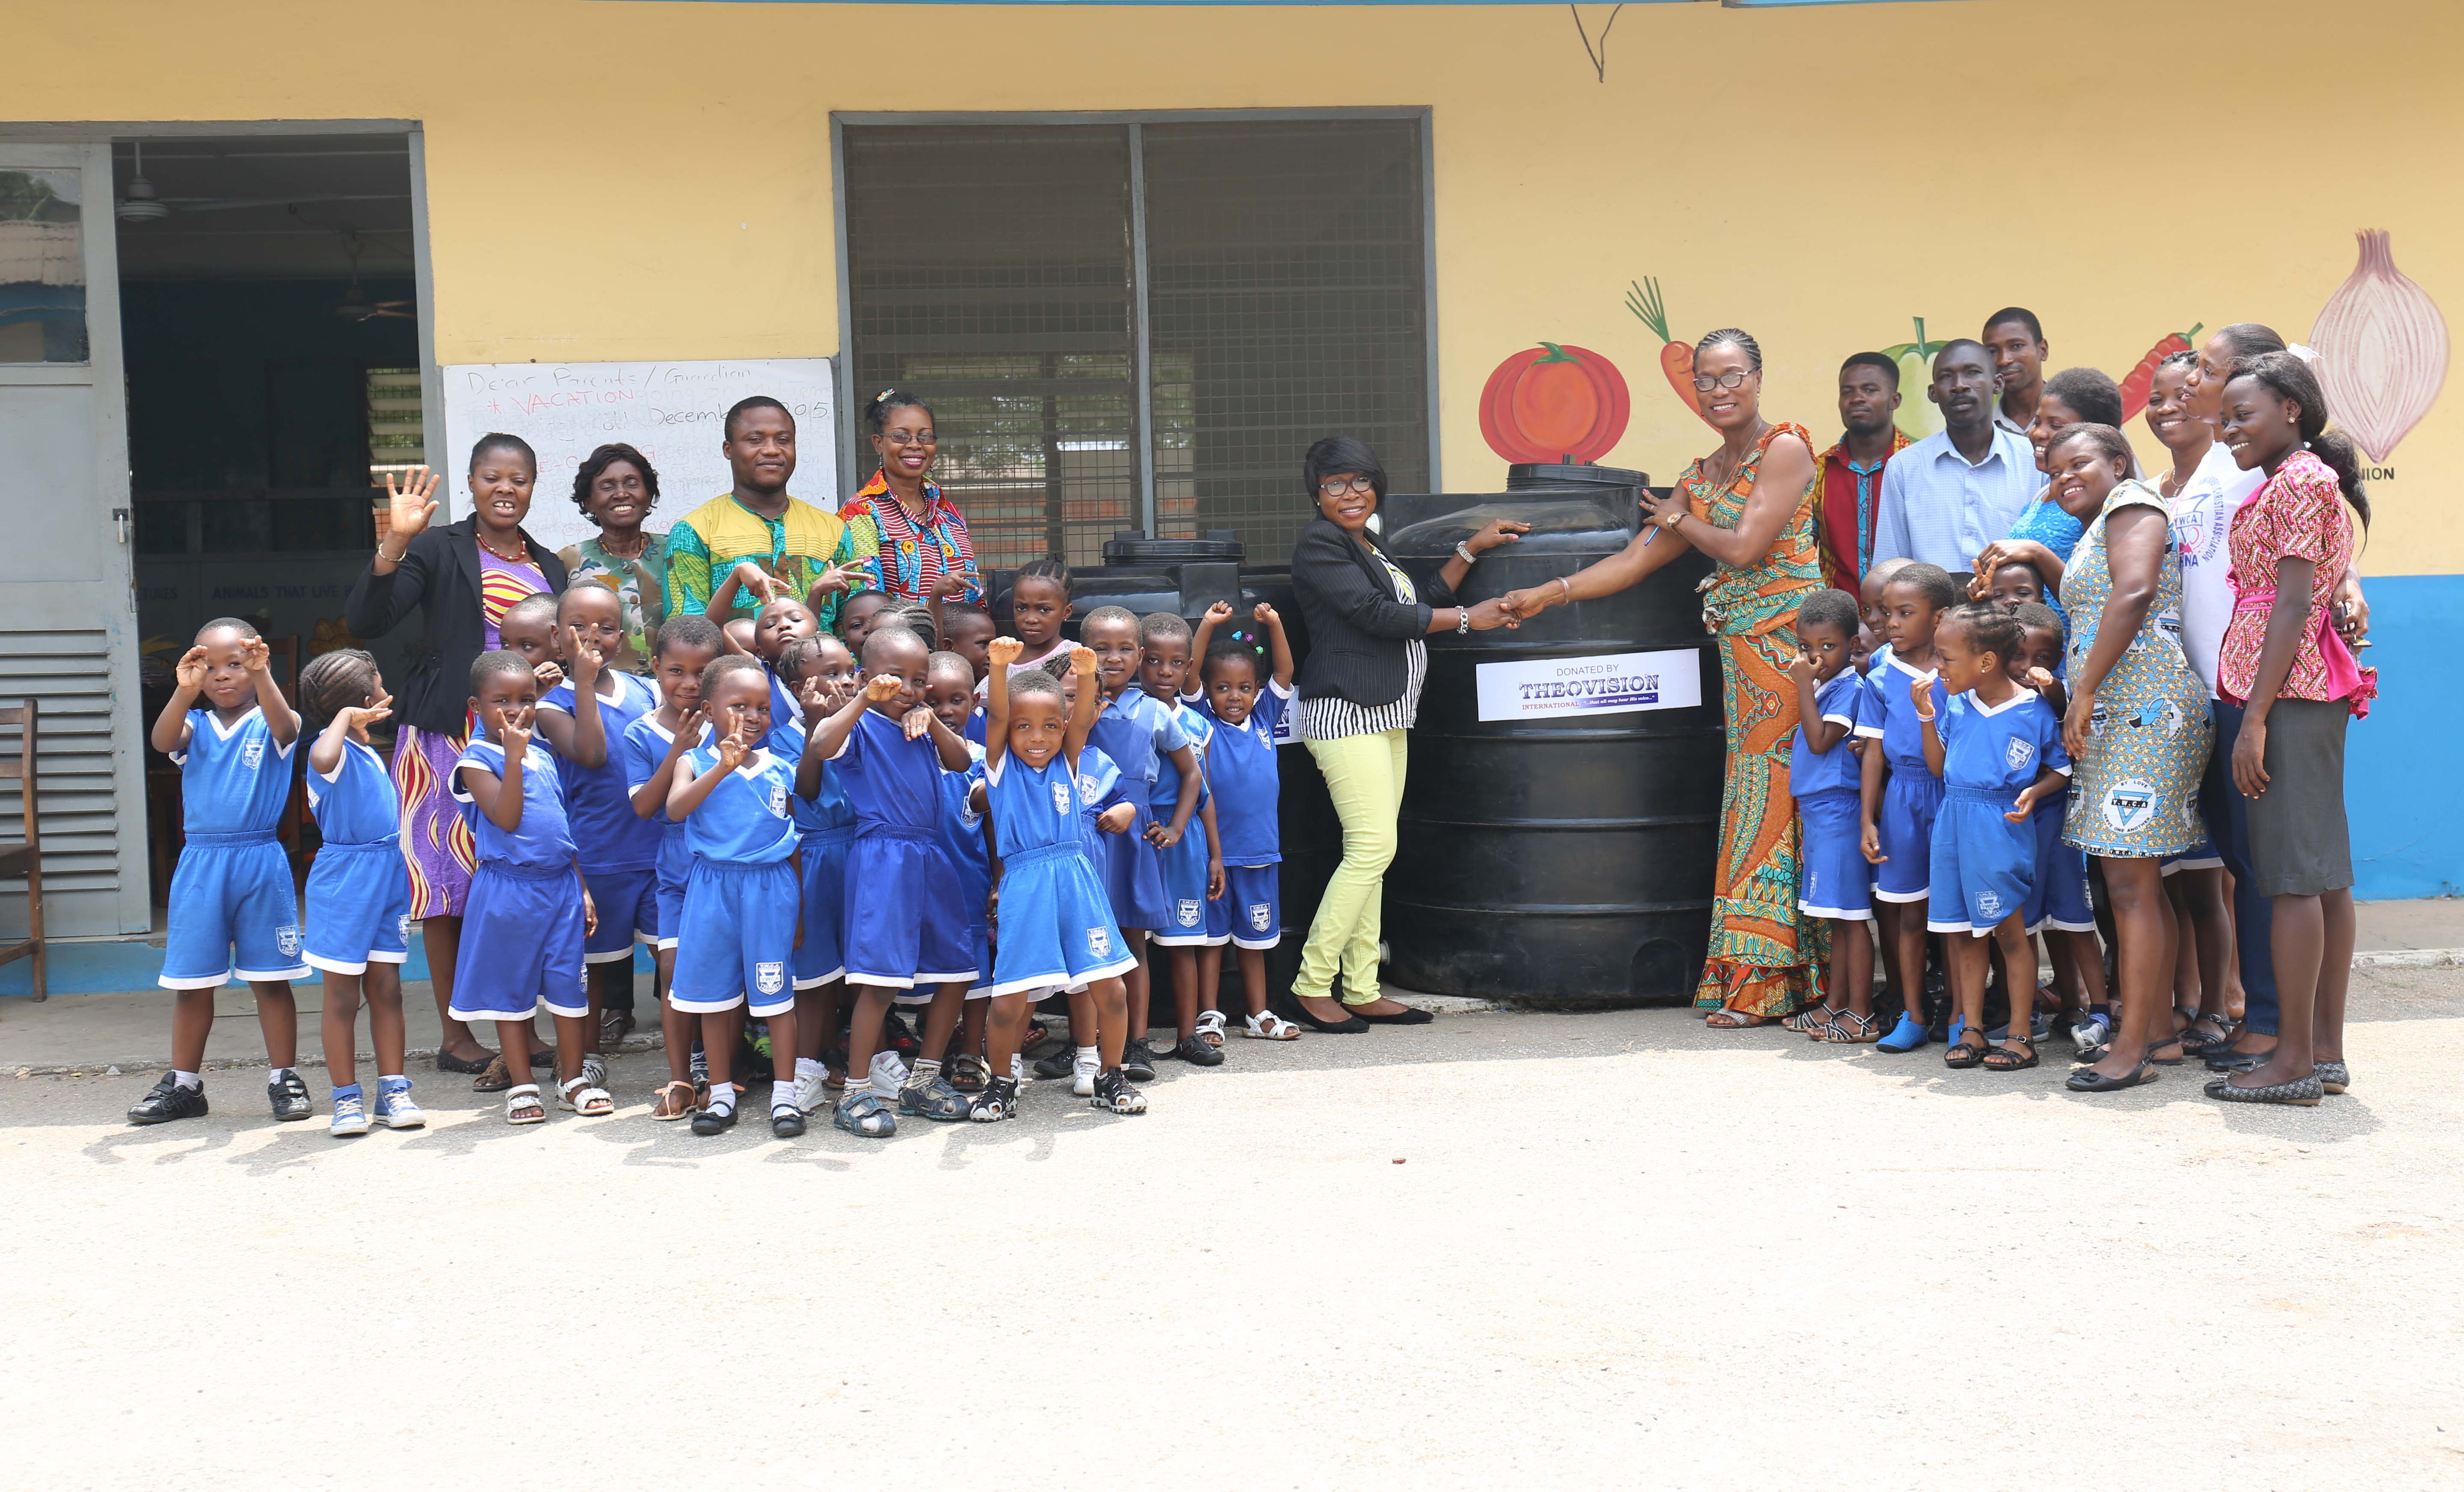 THEOVISION INTERNATIONAL DONATES WATER-STORAGE TANKS TO A DAY CARE